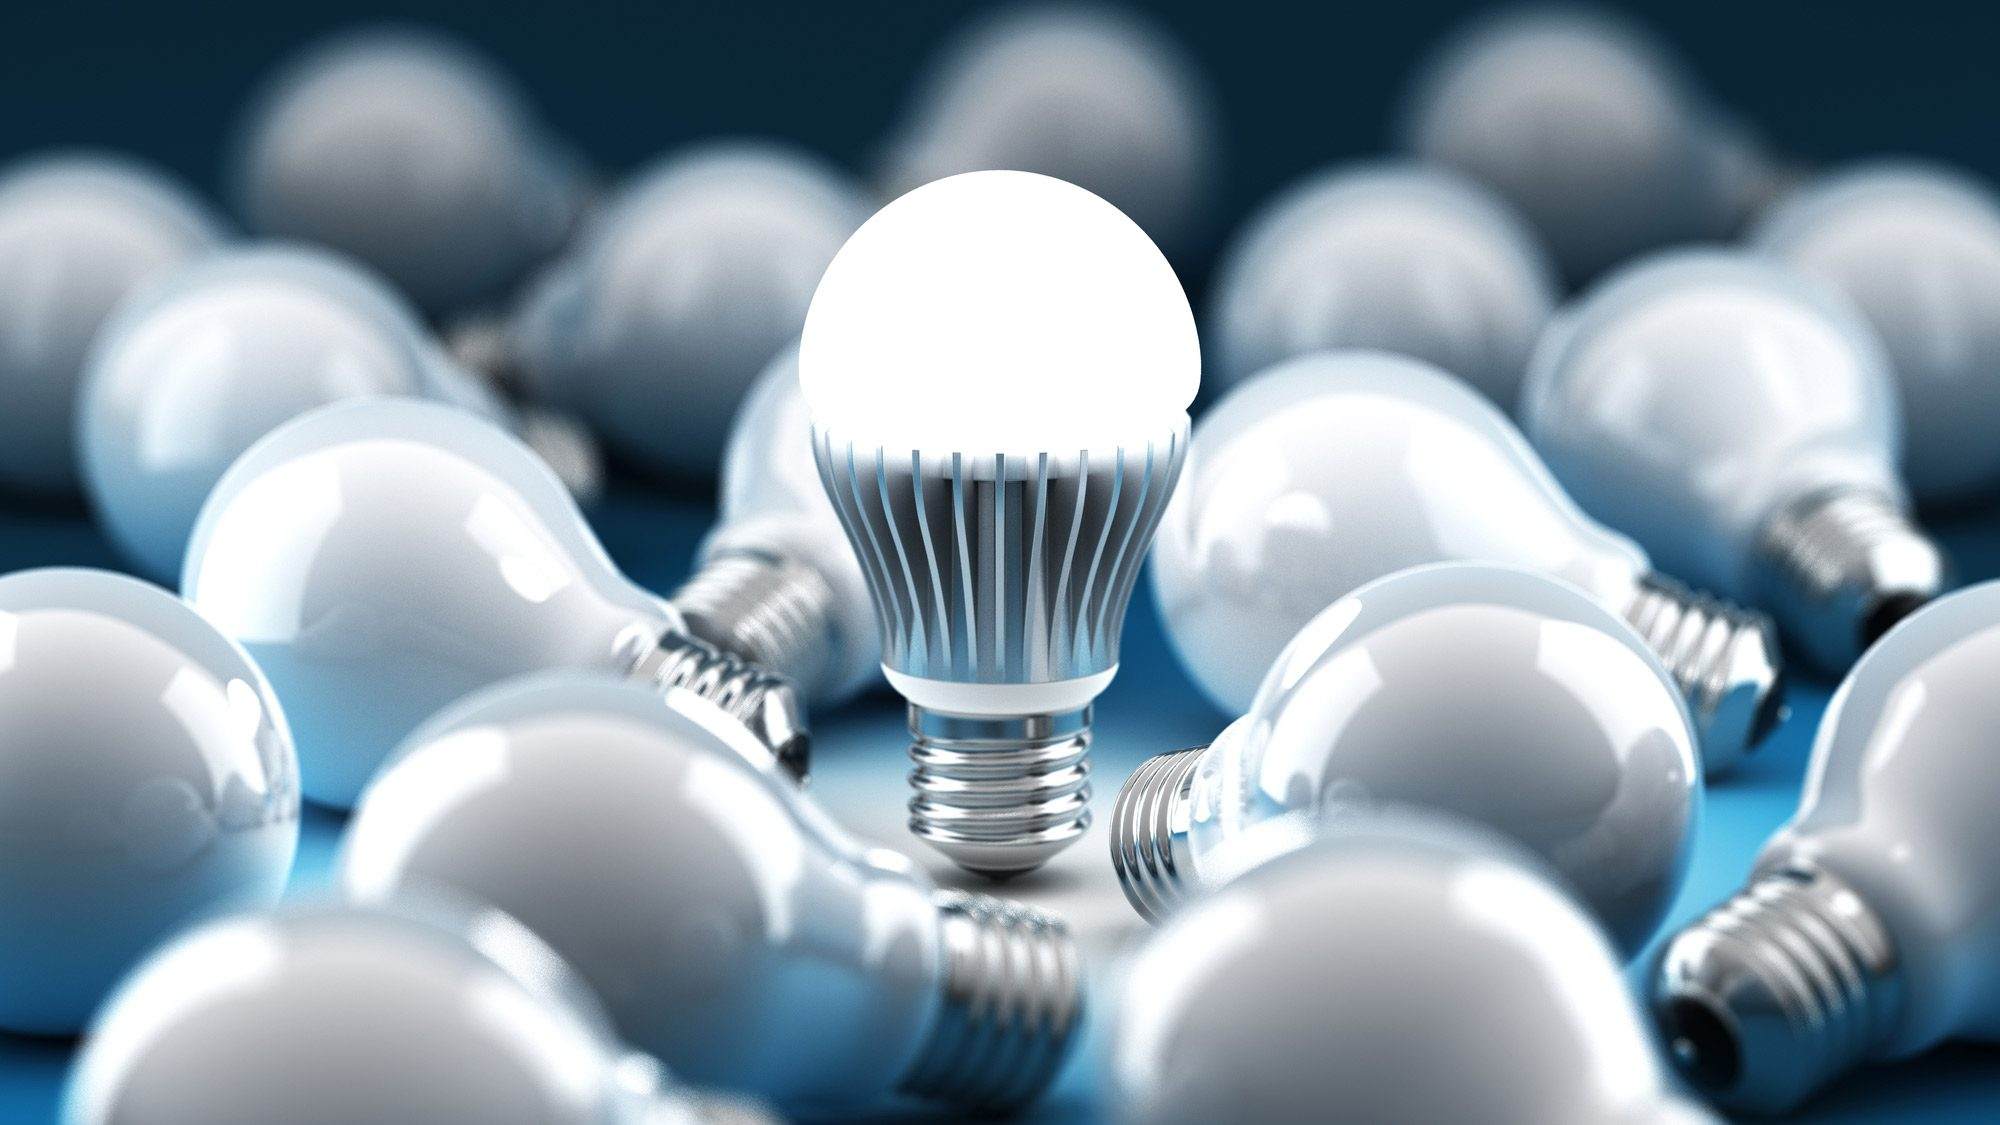 Buy Lightbulbs Best Lightbulb For Every Room In Your Home Realtor